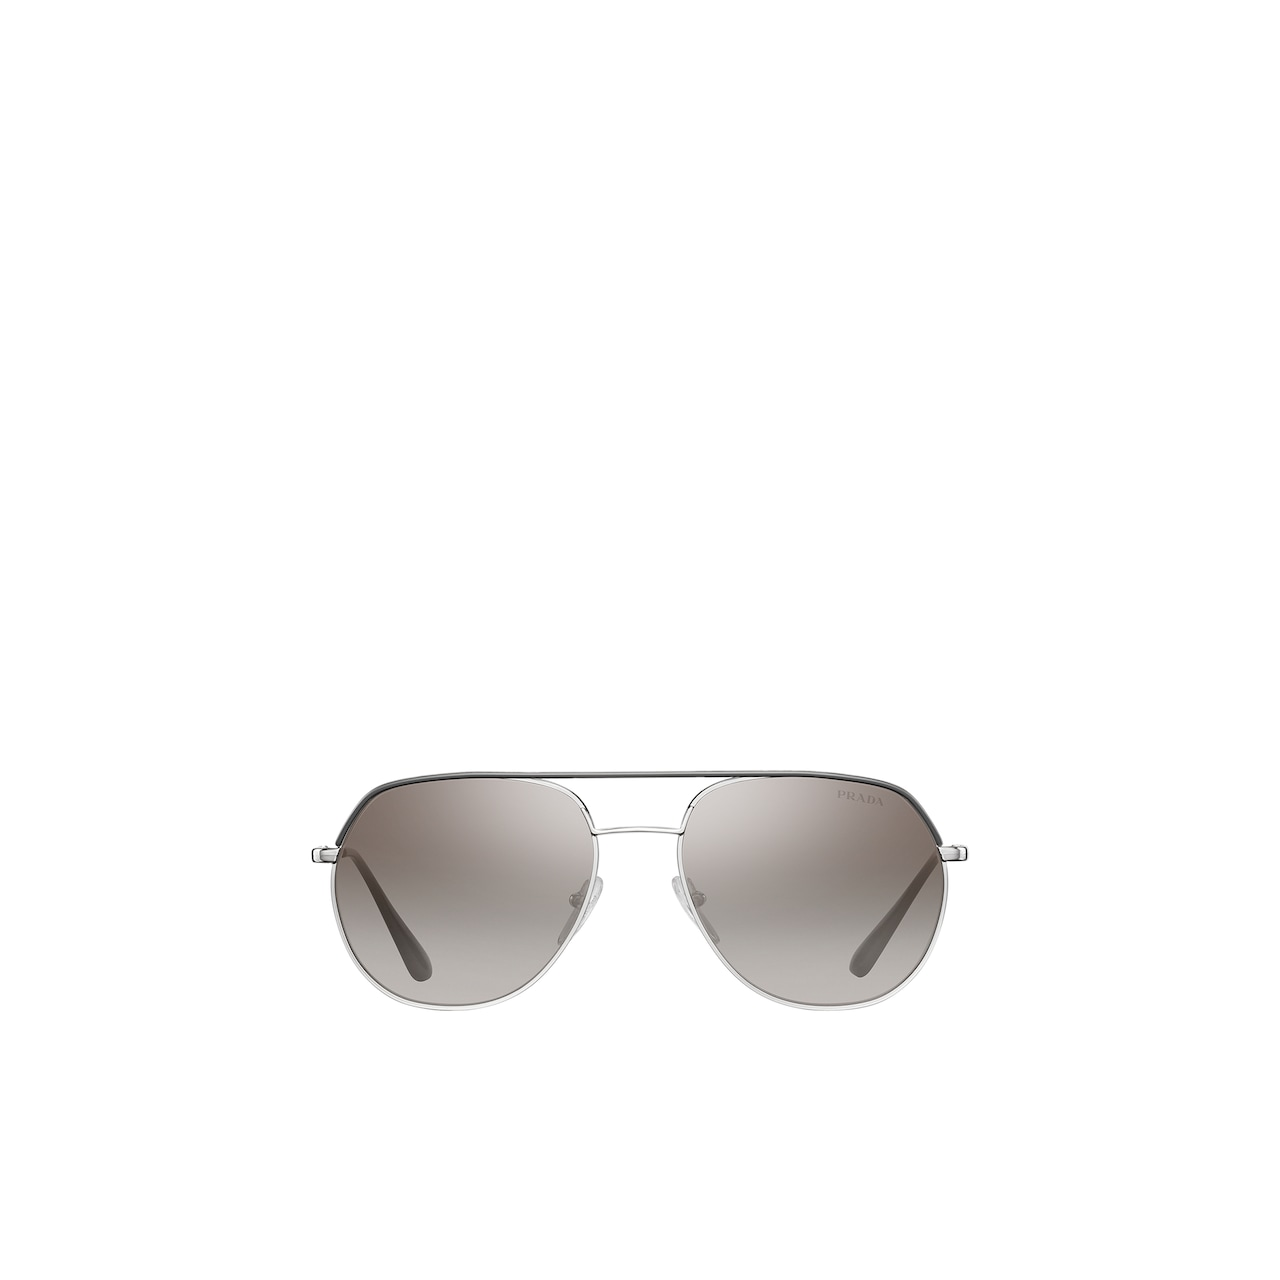 Prada Prada Eyewear Collection 1